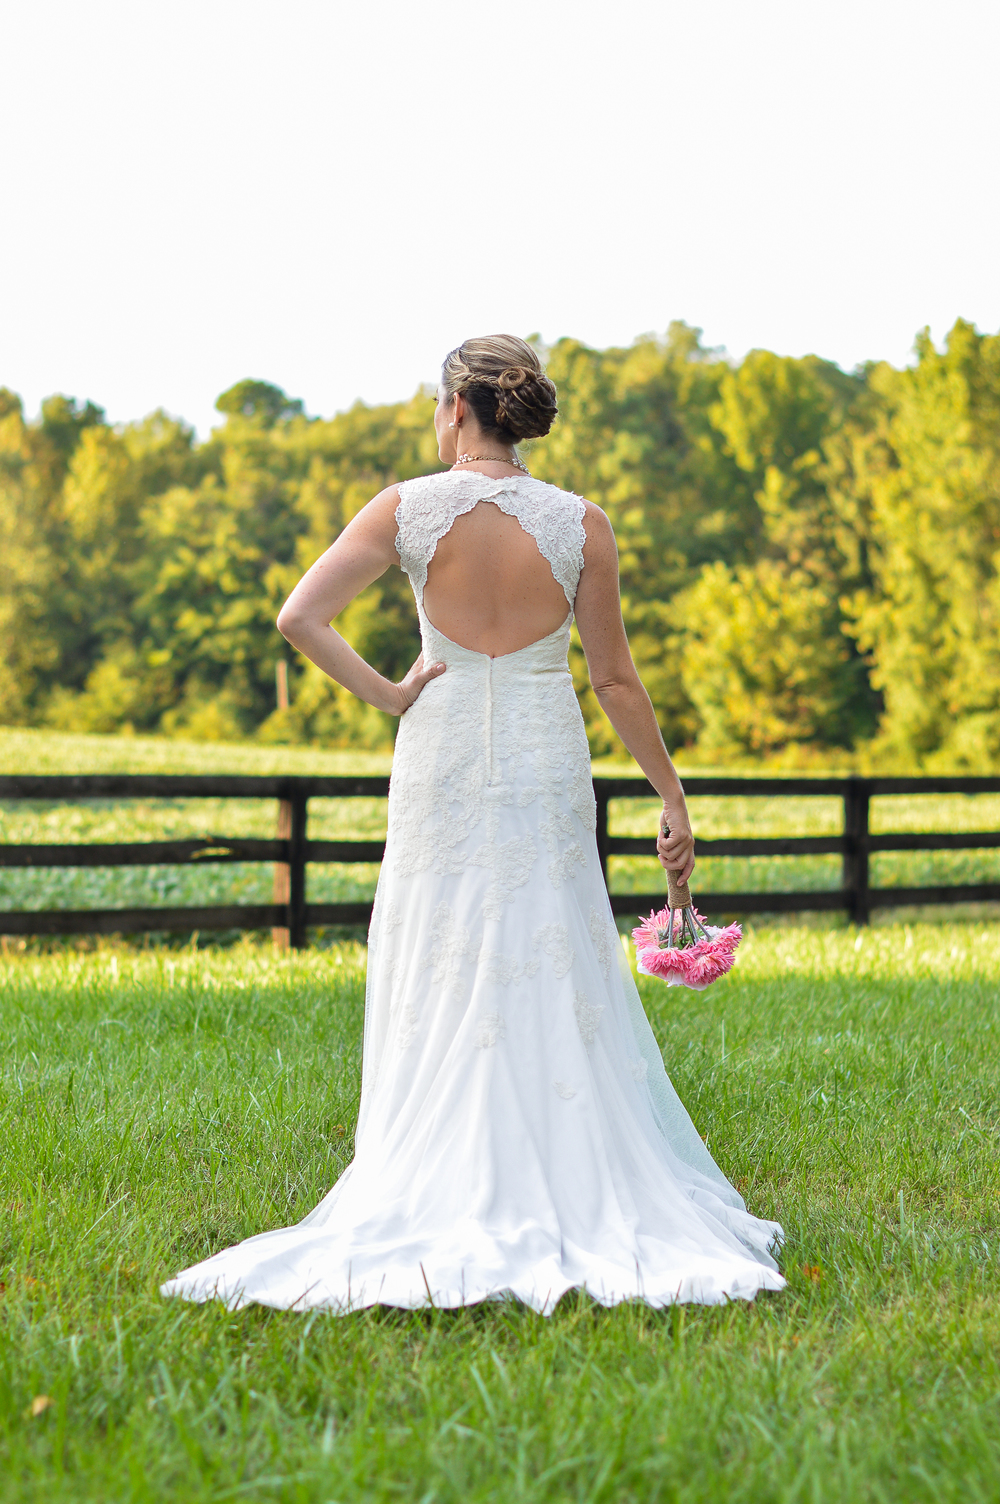 I love the back of her dress. Stunning!